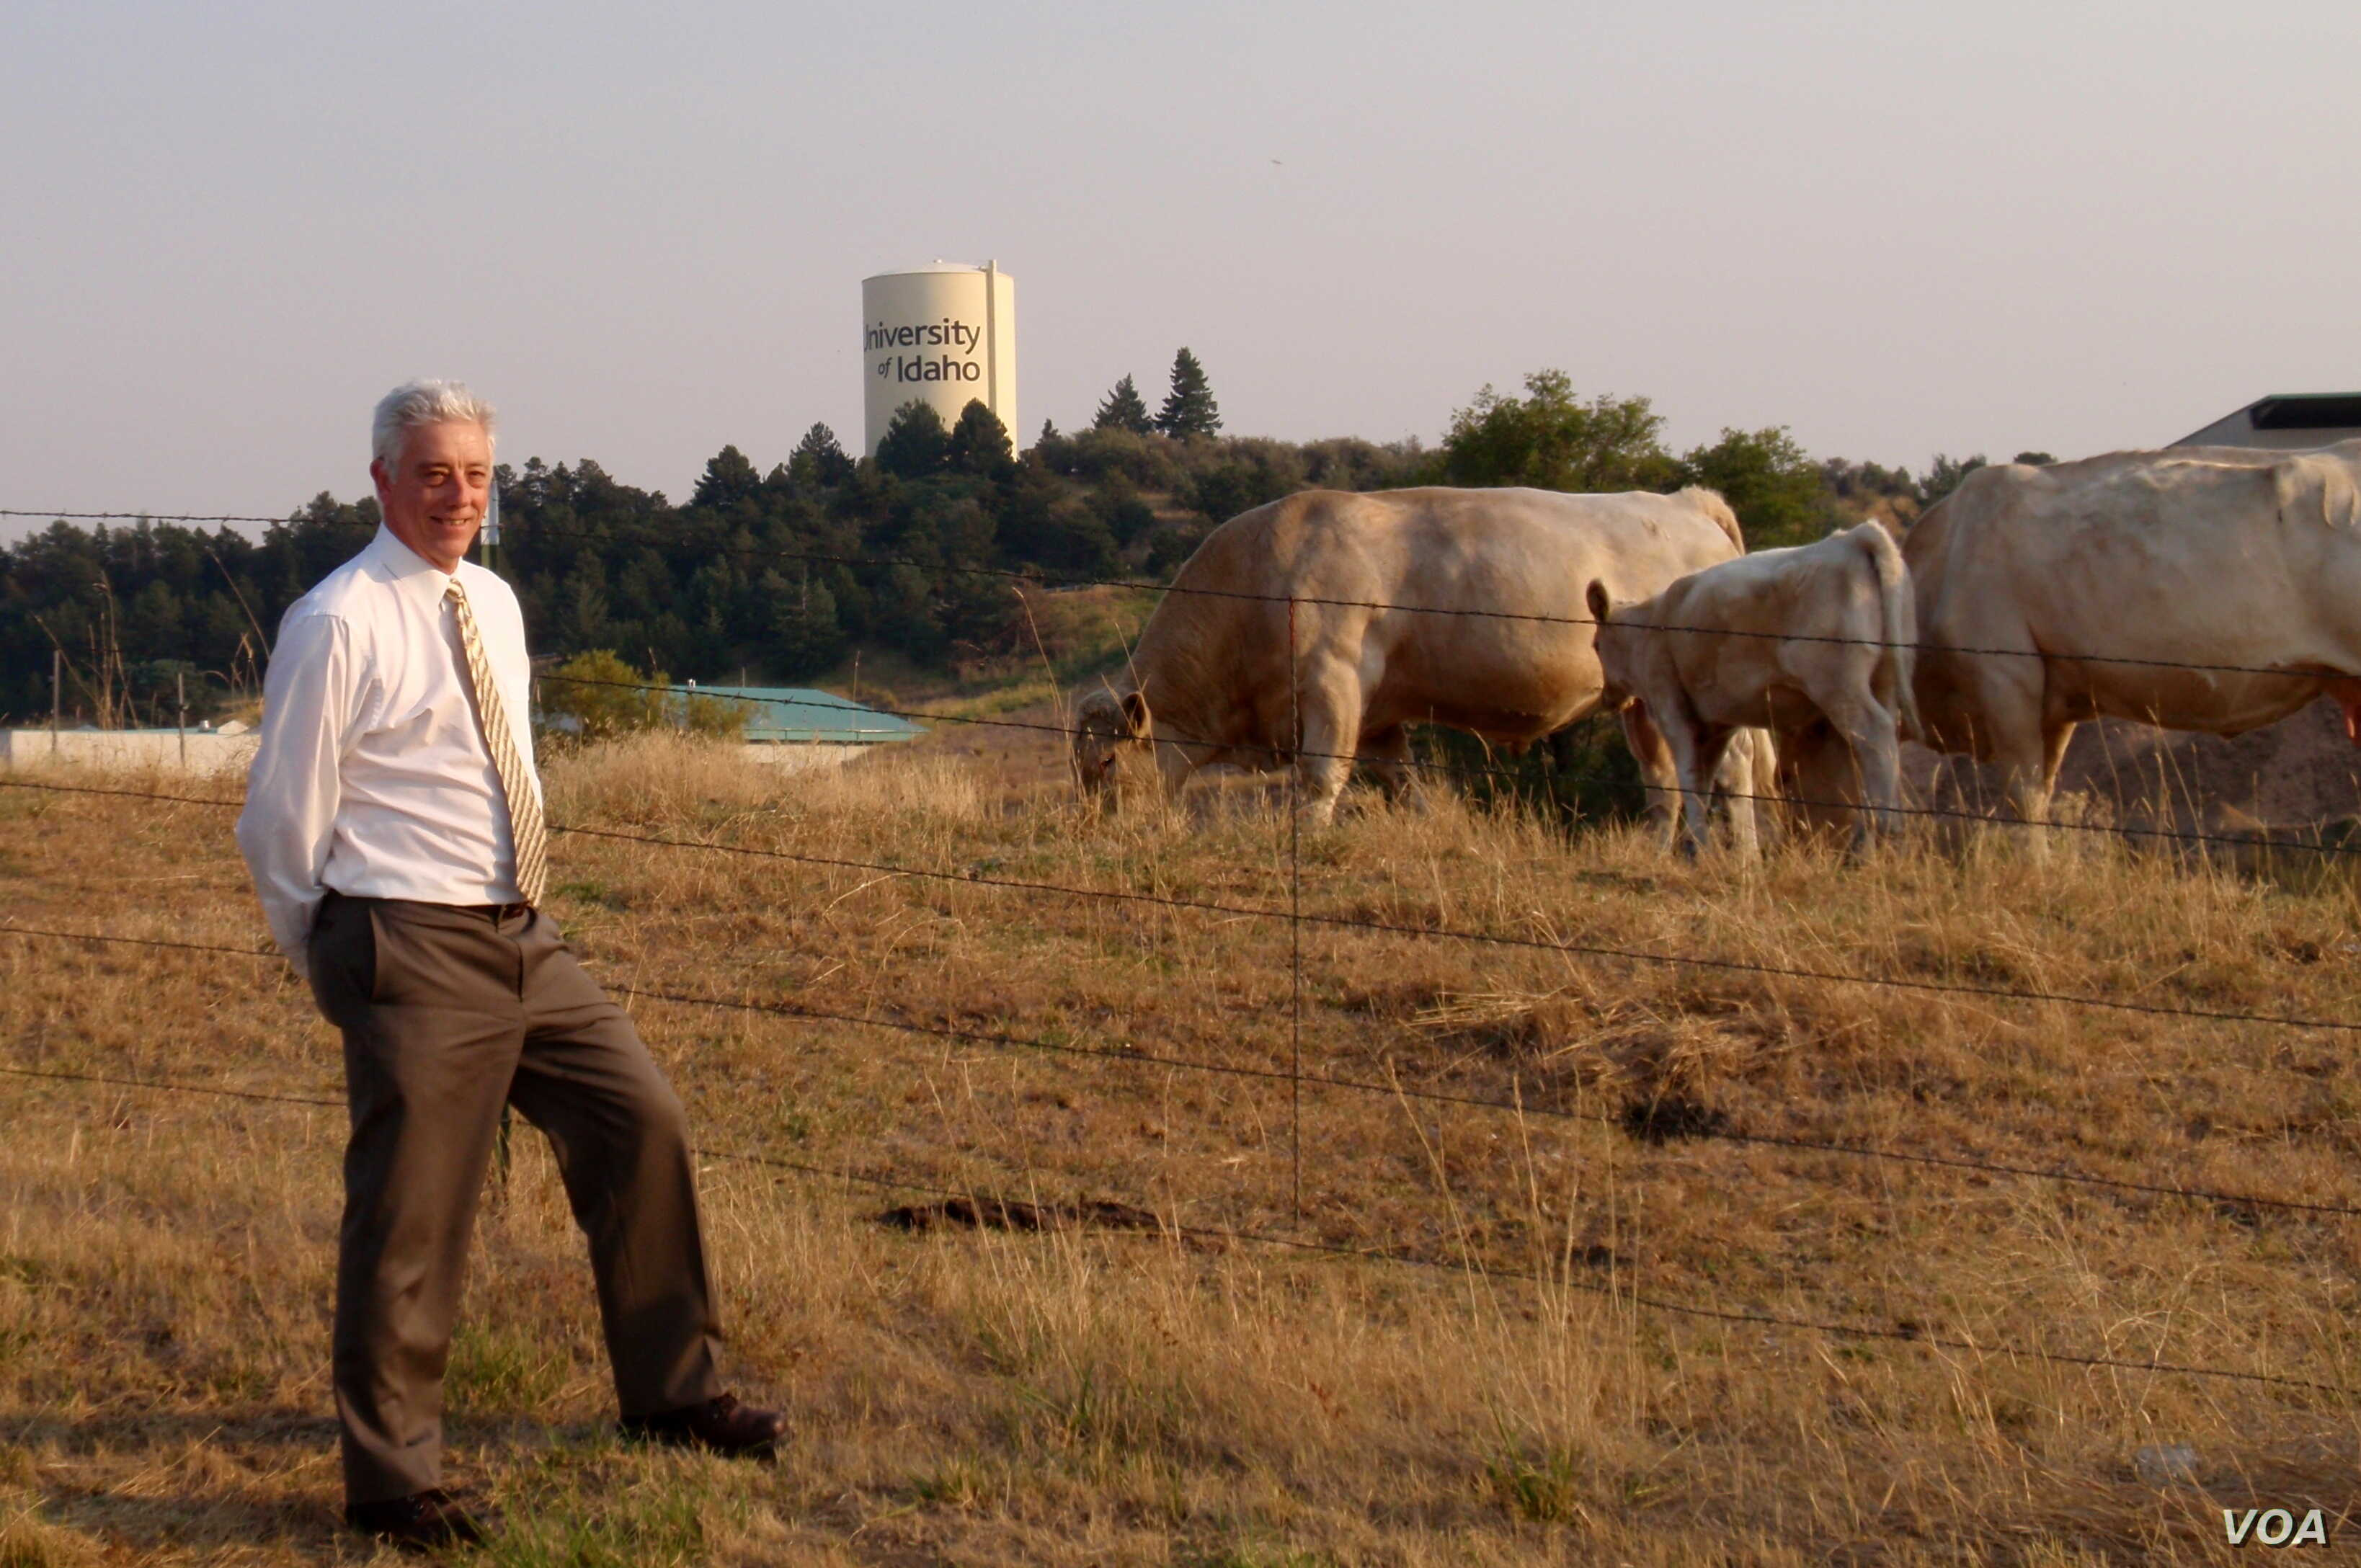 University of Idaho Professor Rod Hill with part of the university's purebred herd (VOA/T. Banse)